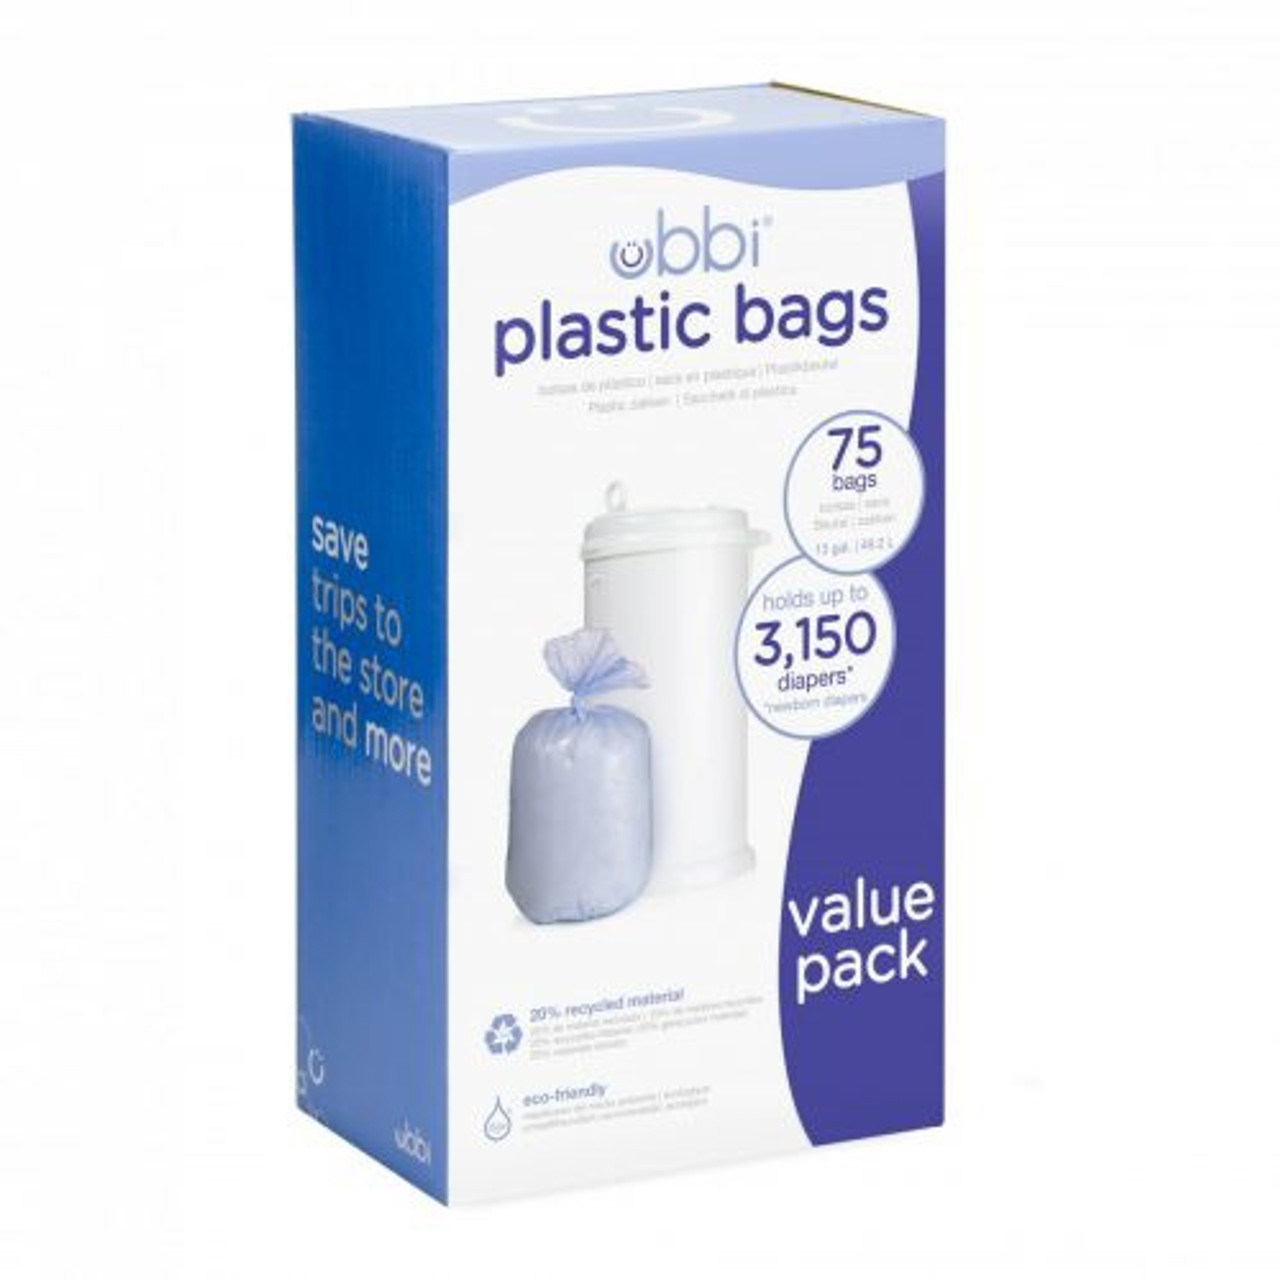 Ubbi Plastic Bags 75 Bag Triple Value Pack at Baby Barn Discounts An eco friendly option for the Ubbi diaper pail. This triple value pack will hold roughly 3150 newborn nappies!